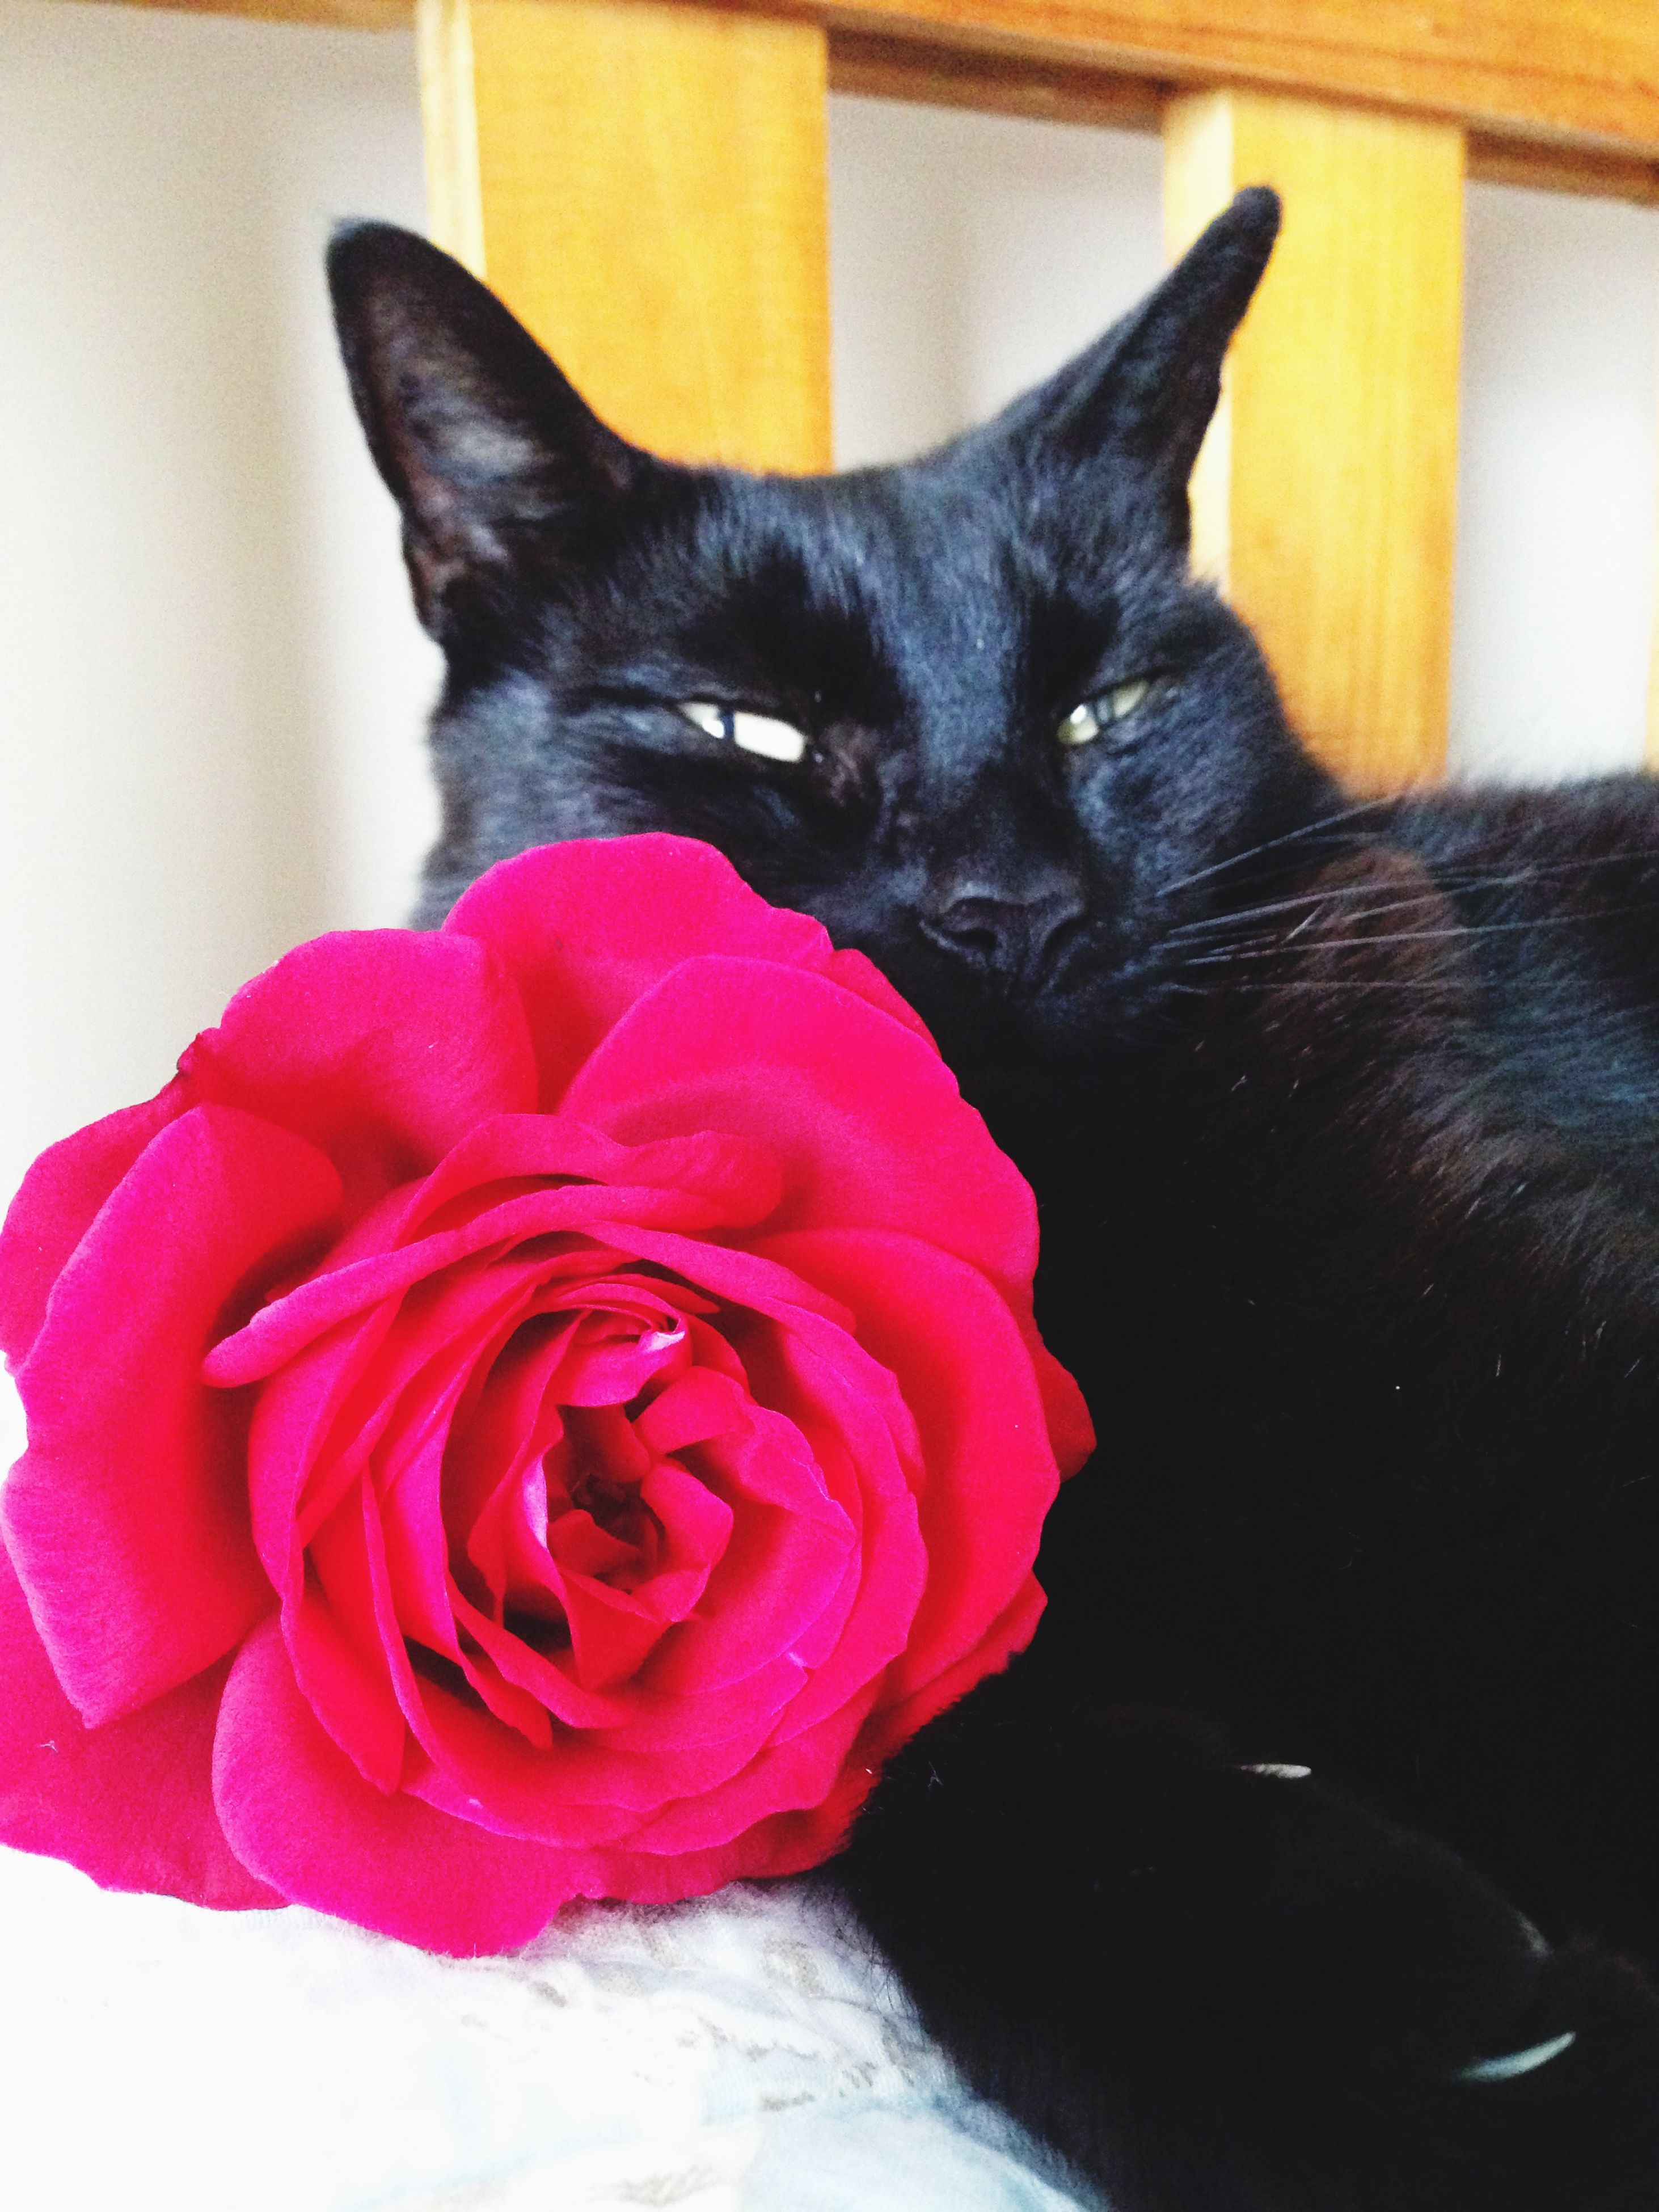 pets, domestic animals, domestic cat, indoors, cat, one animal, animal themes, mammal, feline, whisker, home interior, relaxation, black color, close-up, bed, looking at camera, red, portrait, sitting, resting